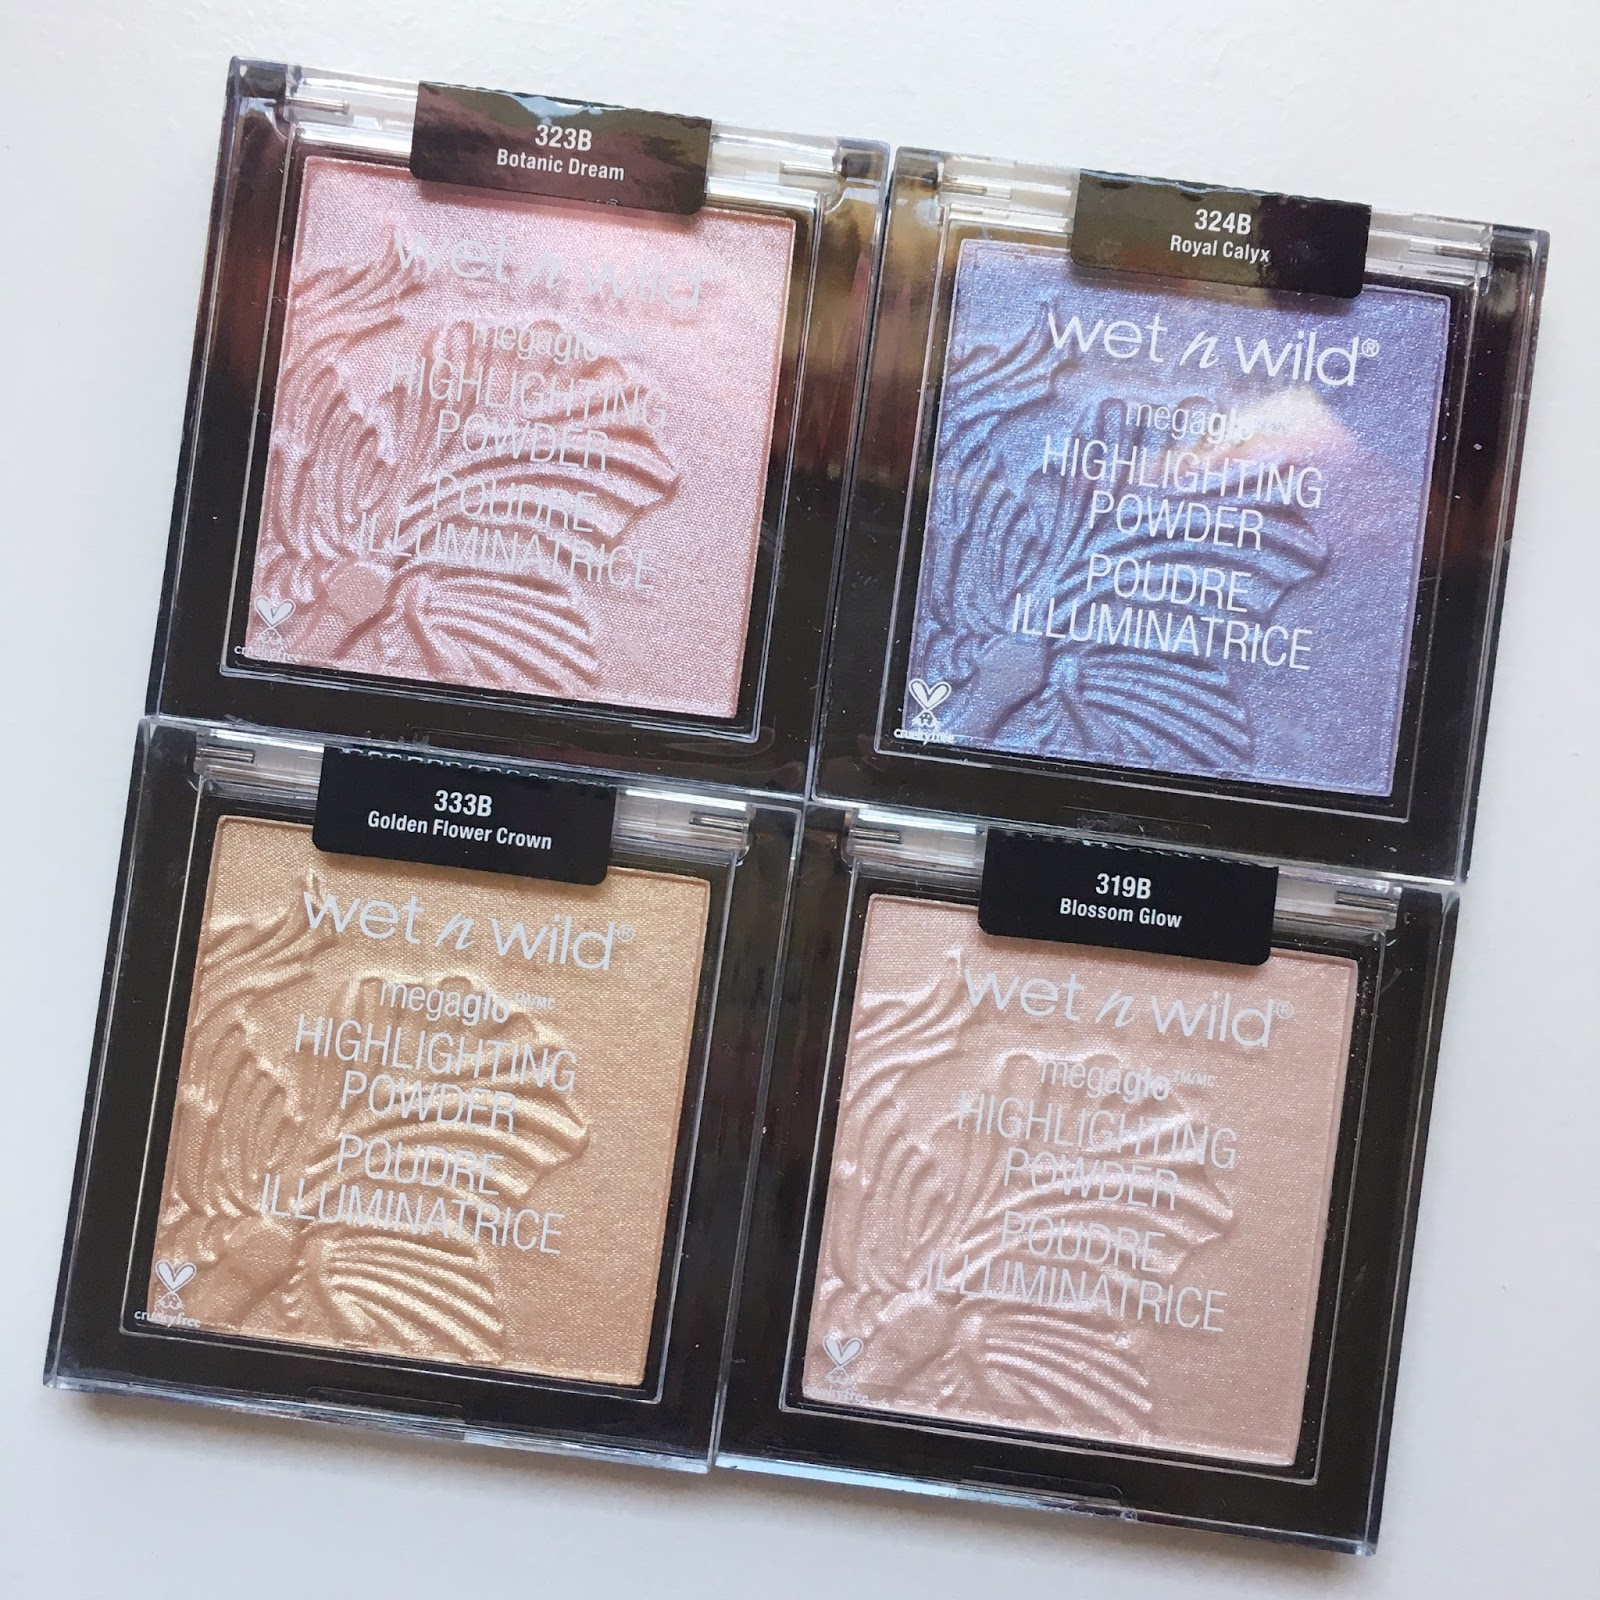 marshmallow beauty blog reviews wet n wild new megaglo hello wet n wild finally released some new shades of their popular megaglo highlighters the original i love the original megaglow highlighters in precious izmirmasajfo